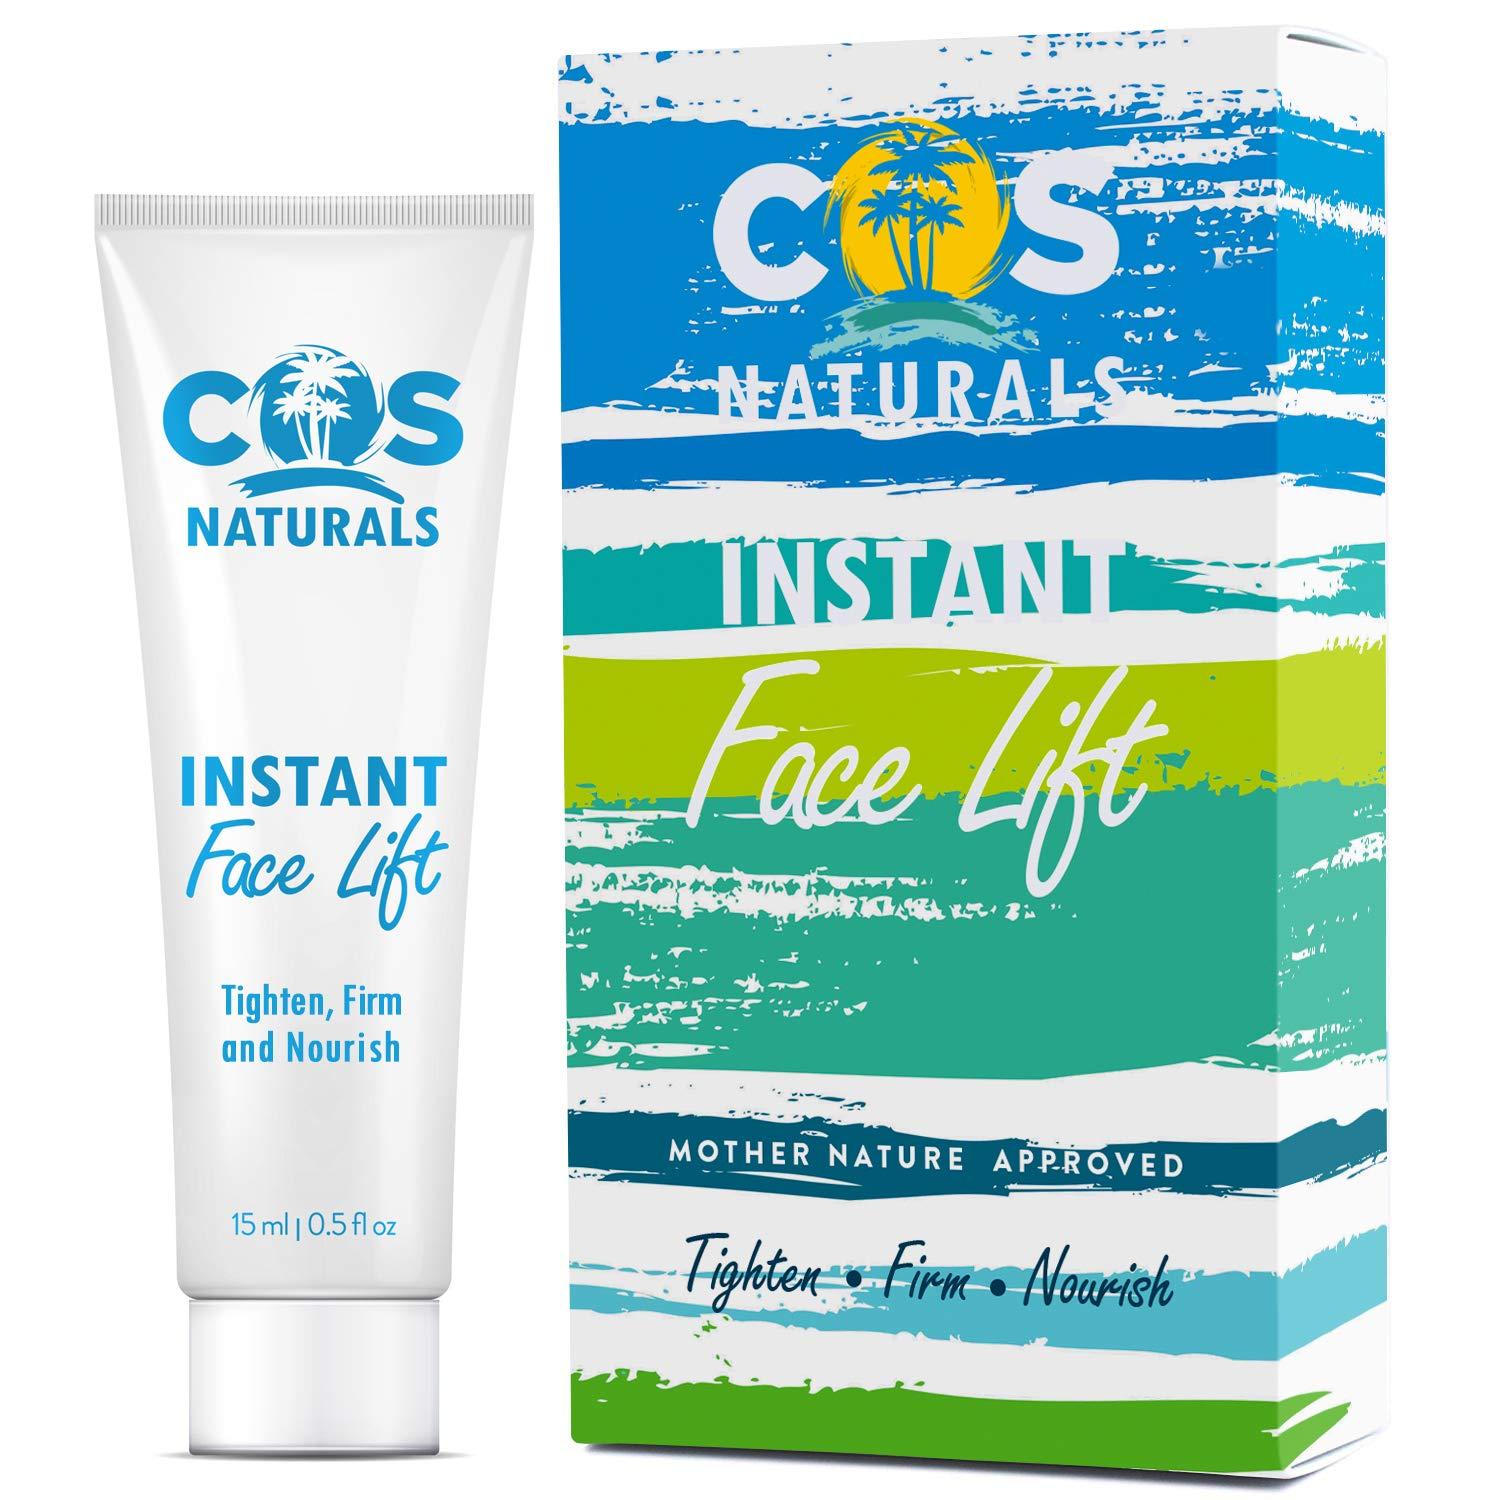 COS Naturals Instant Face Lift Firming Cream for Wrinkles Fine Lines Under Eye Puffiness Bags (0.5 fl oz / 15ml)